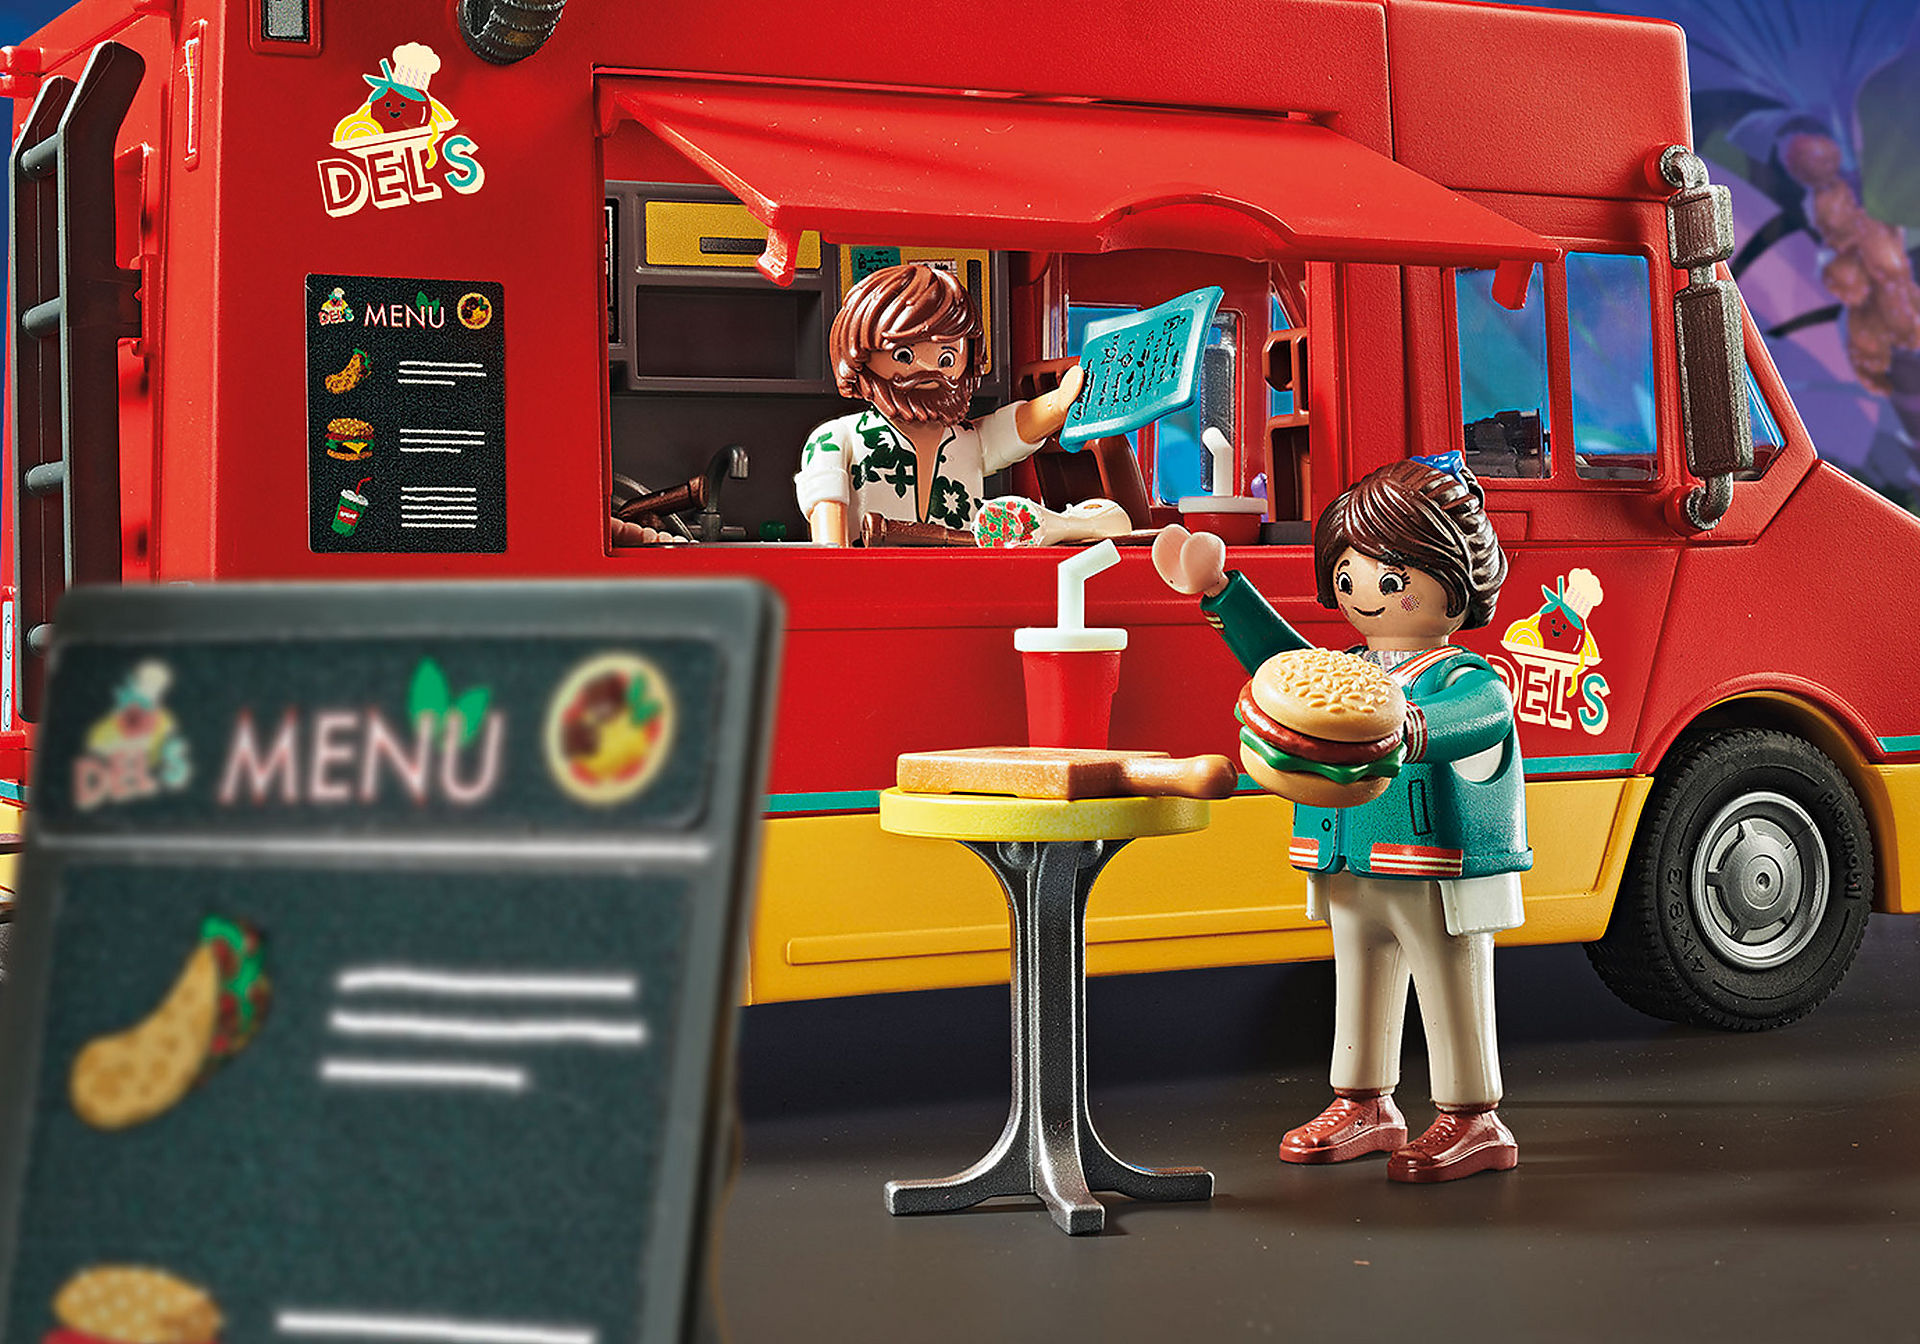 http://media.playmobil.com/i/playmobil/70075_product_extra2/PLAYMOBIL: THE MOVIE Food Truck Del'a